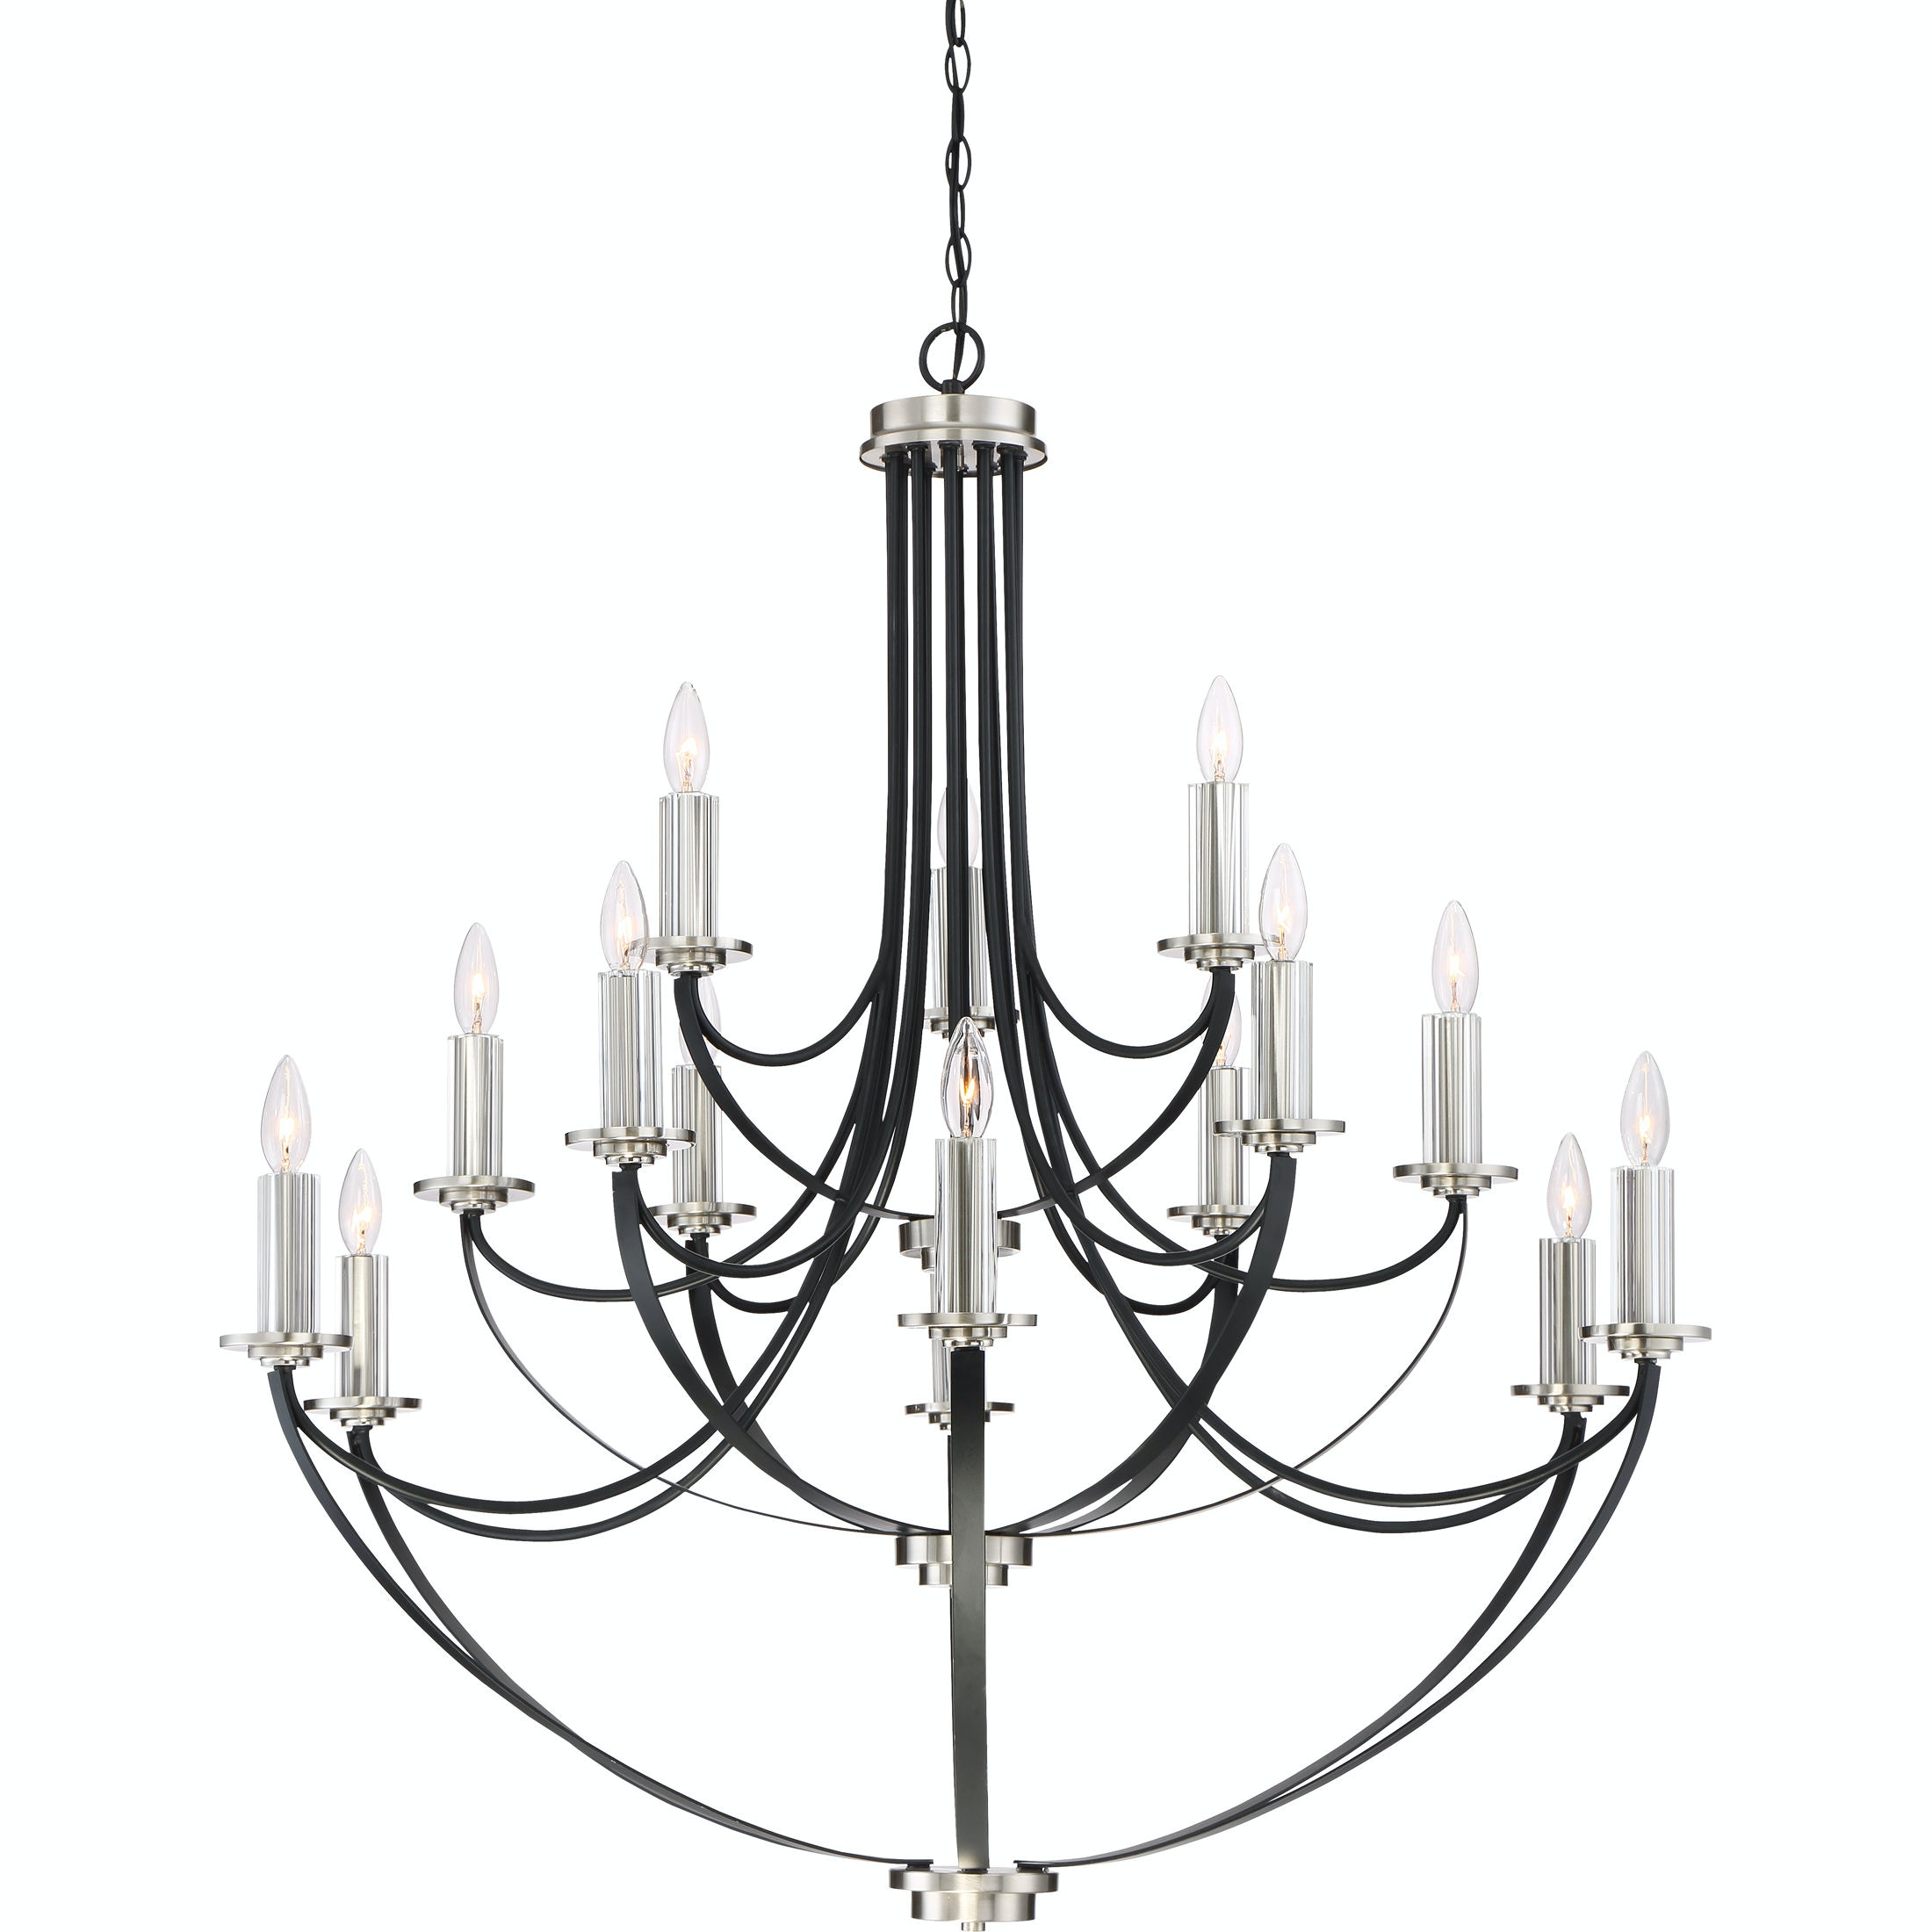 Quoizel Chandelier ANA5015K  sc 1 st  Frazier and Son Furniture & Quoizel Lamps and Lighting Chandelier - Frazier and Son Furniture ...